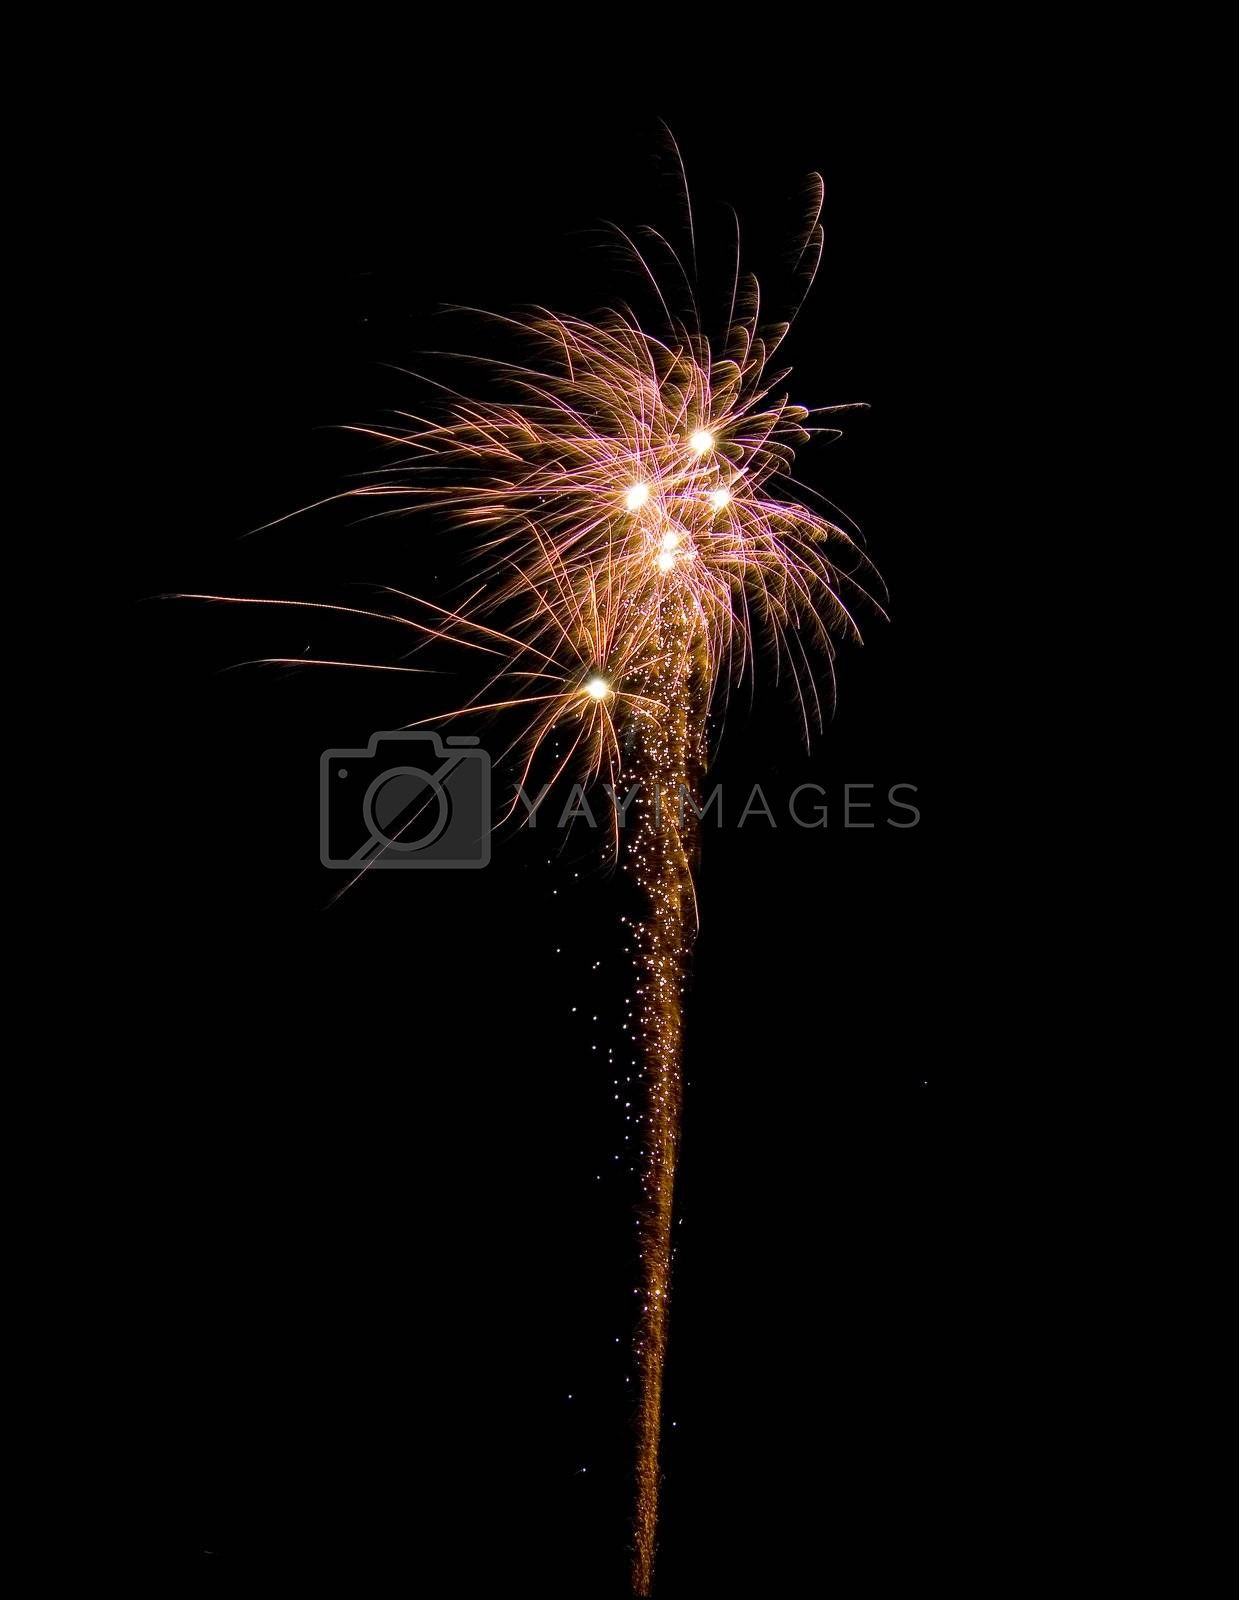 image of an explosion of a firework during a celebration